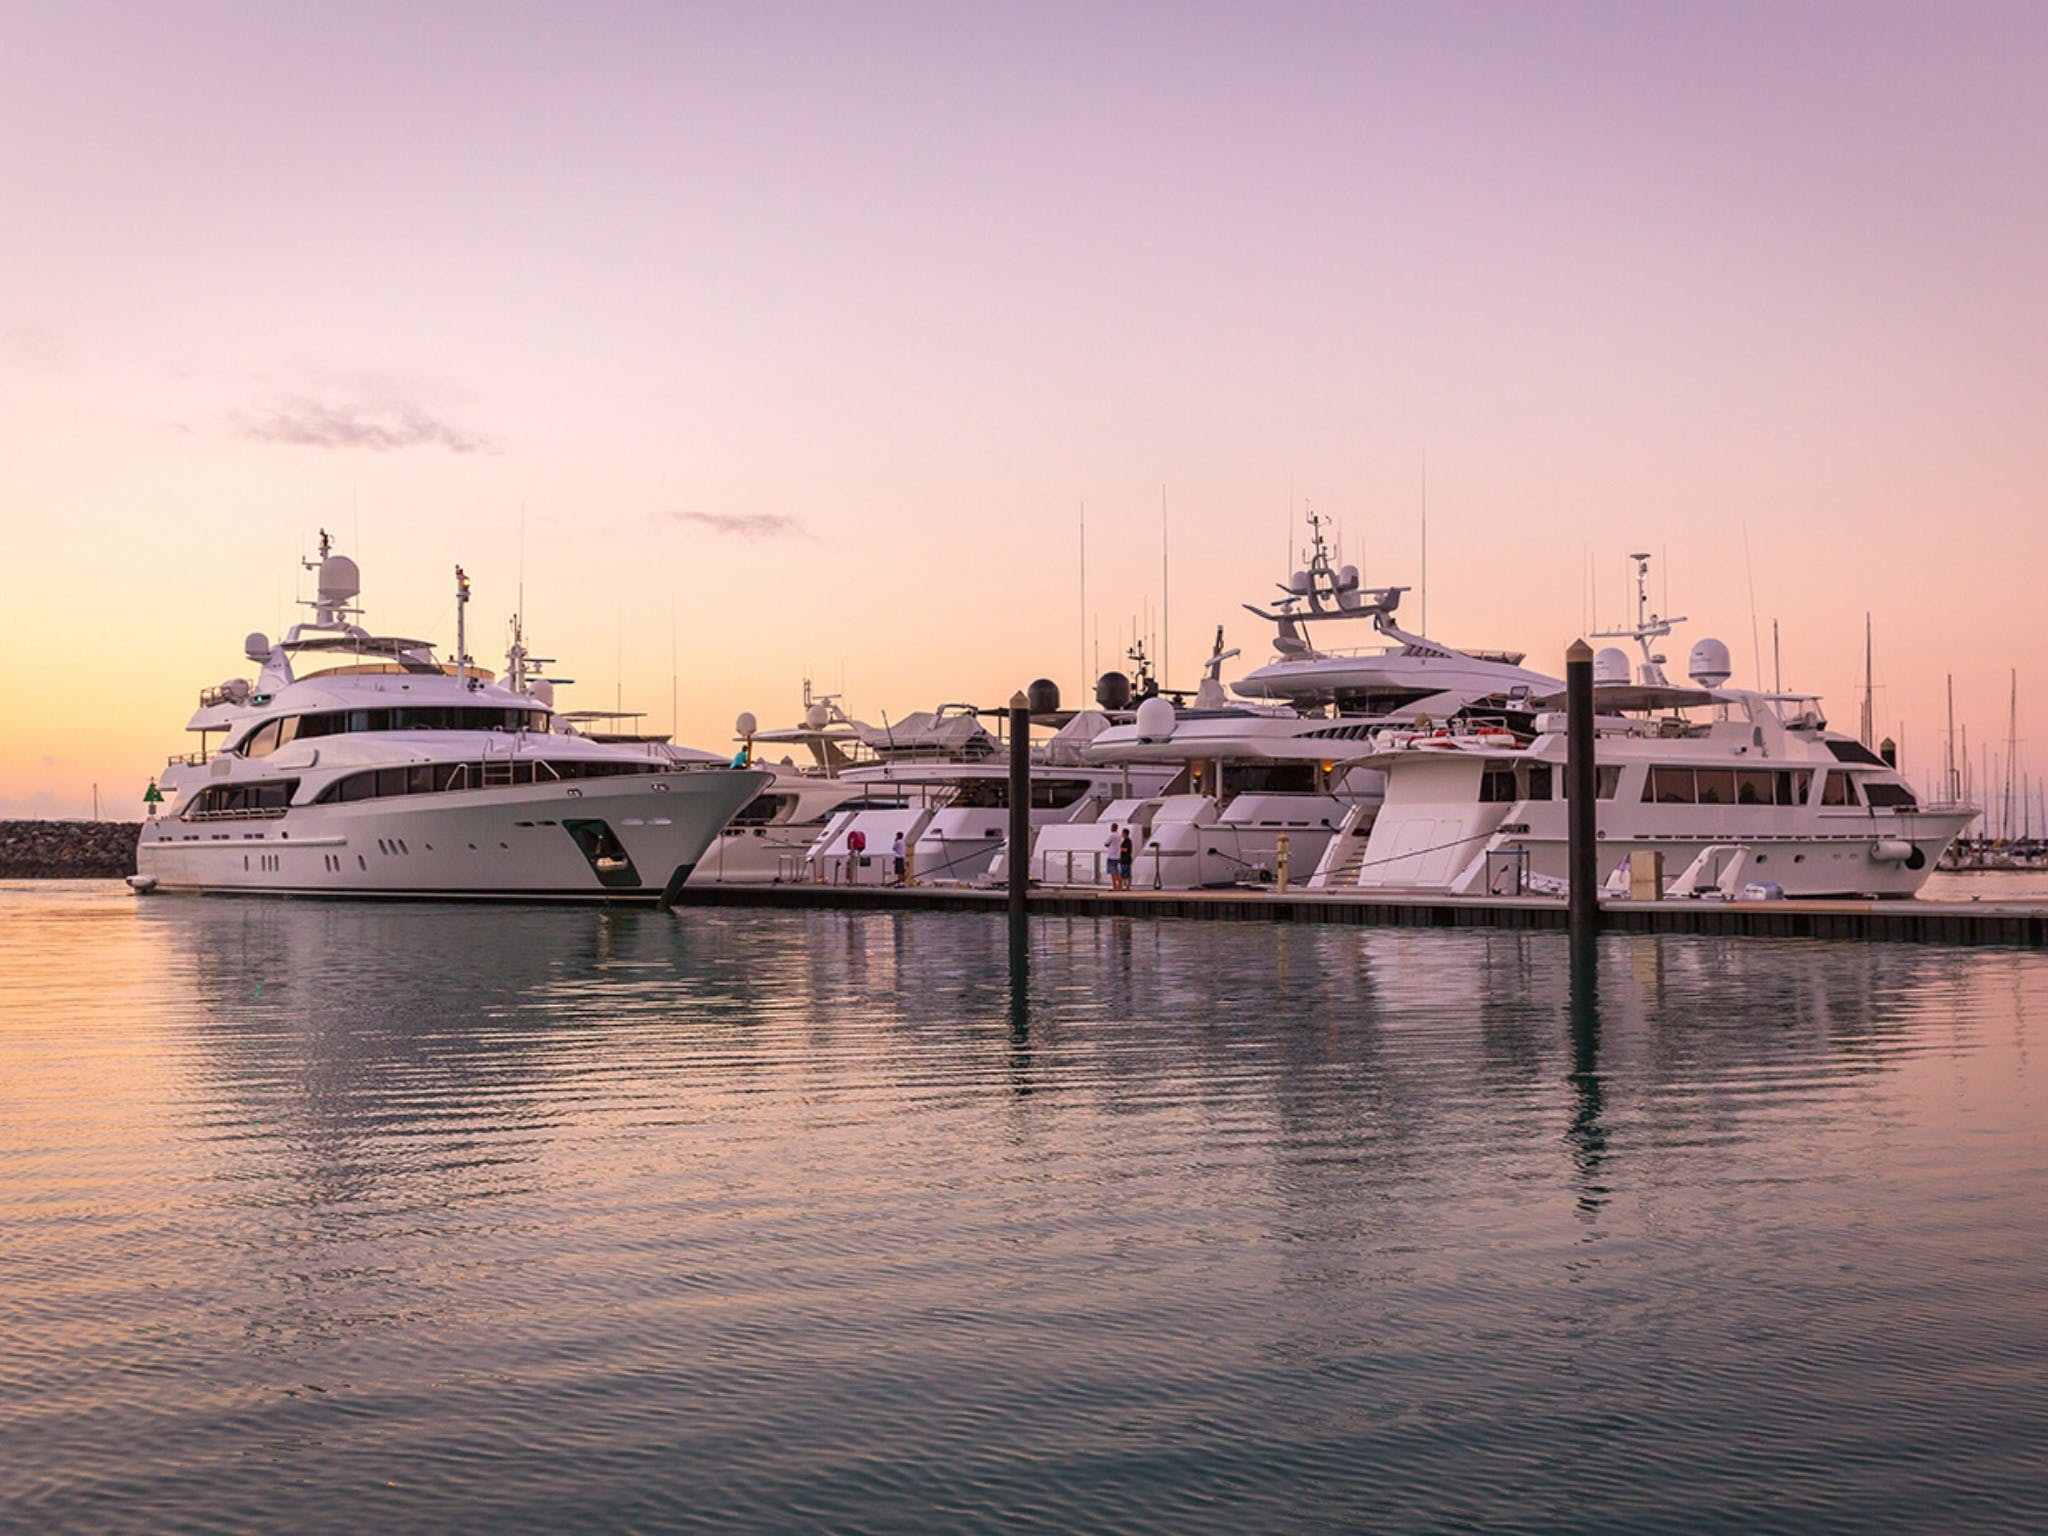 Australian Superyacht Rendezvous - Great Barrier Reef edition - Accommodation Resorts